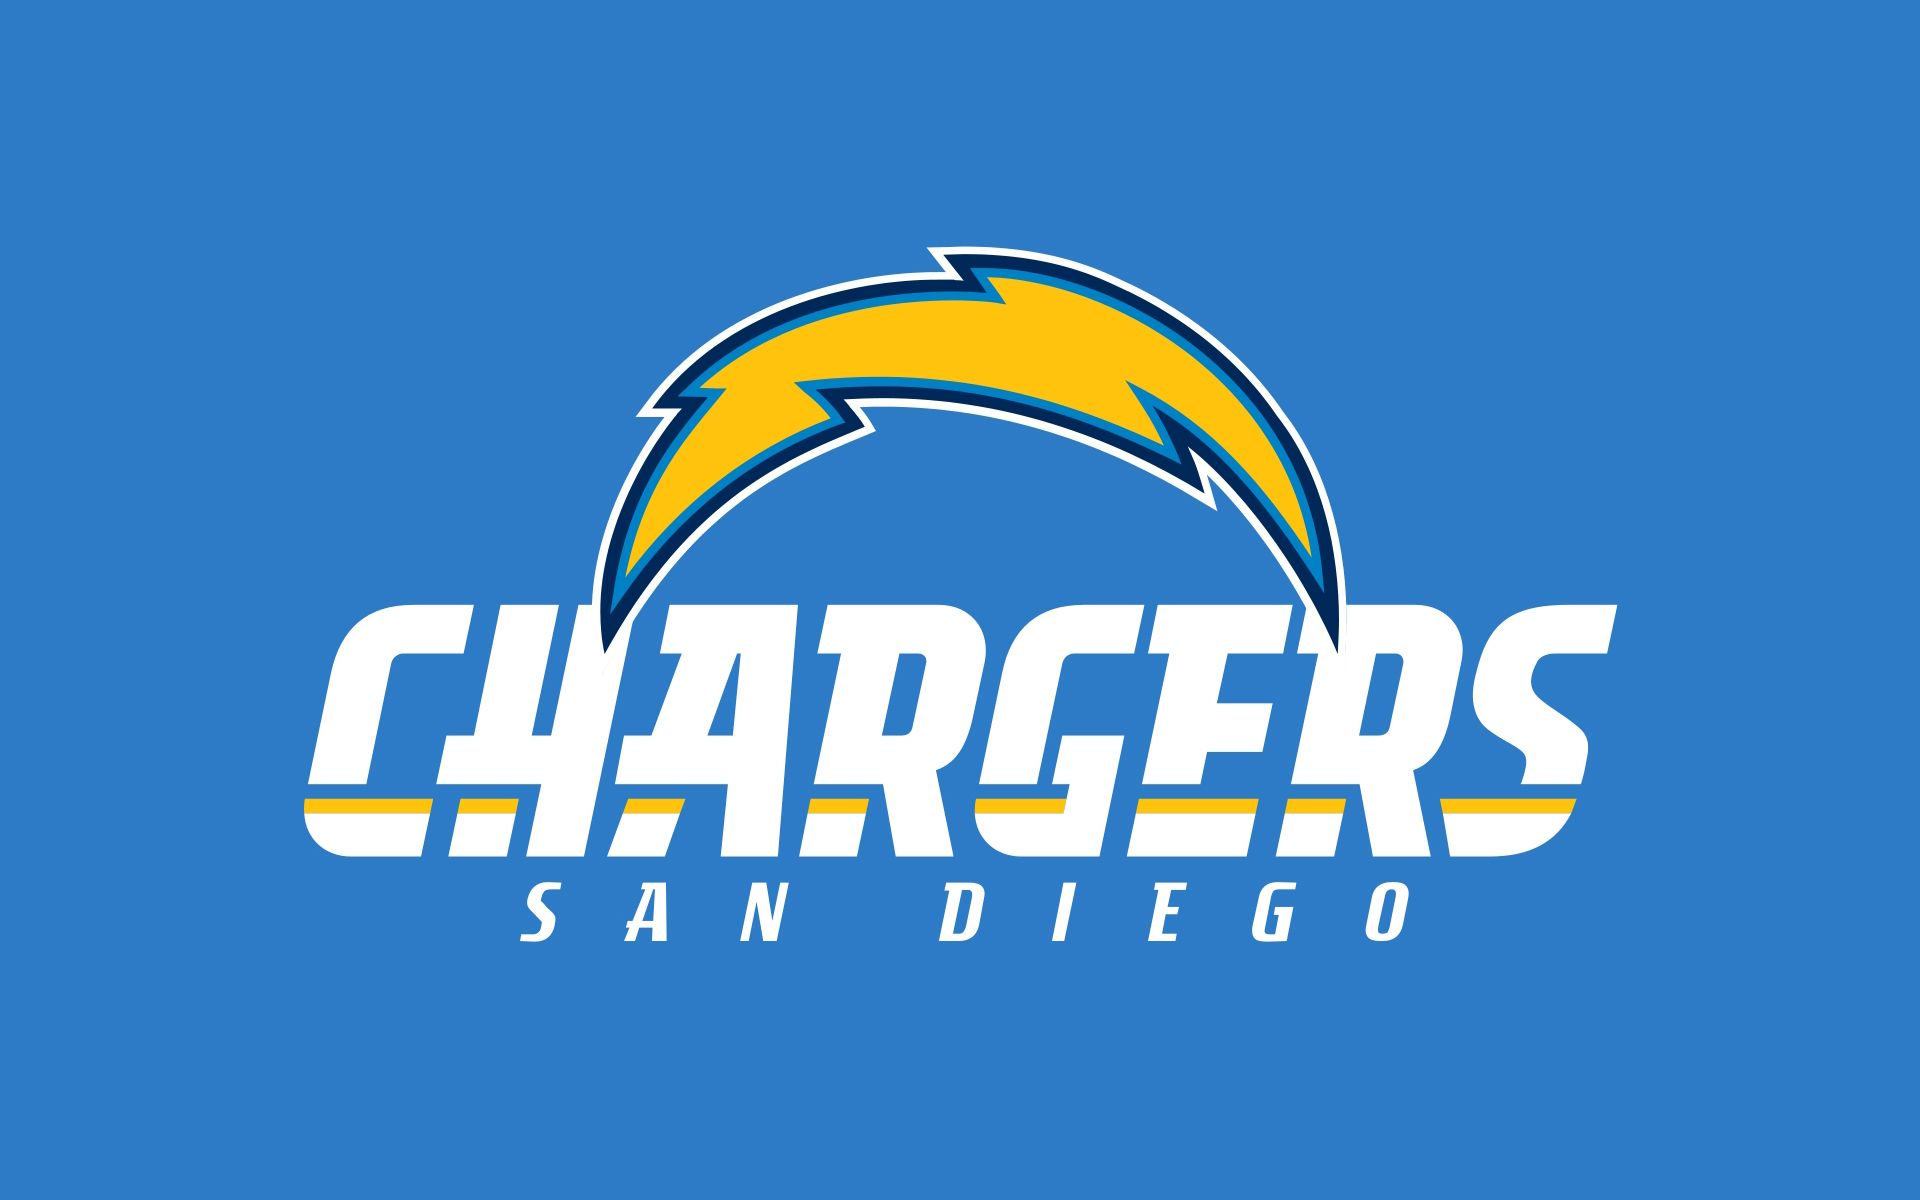 Chargers San Diego Chargers Wallpaper San Diego Chargers Logo San Diego Chargers